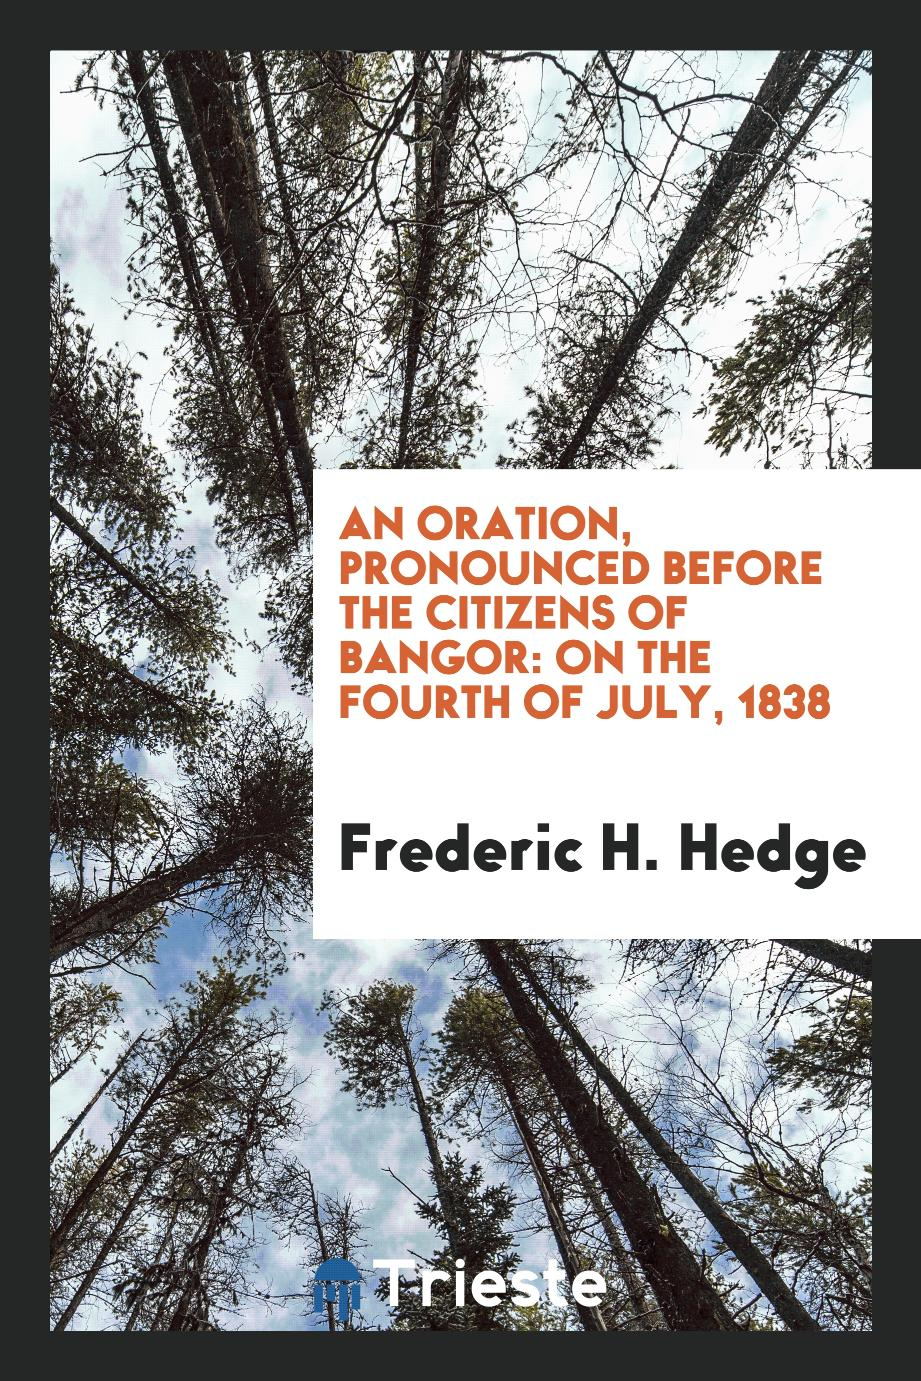 An Oration, Pronounced Before the Citizens of Bangor: On the Fourth of July, 1838